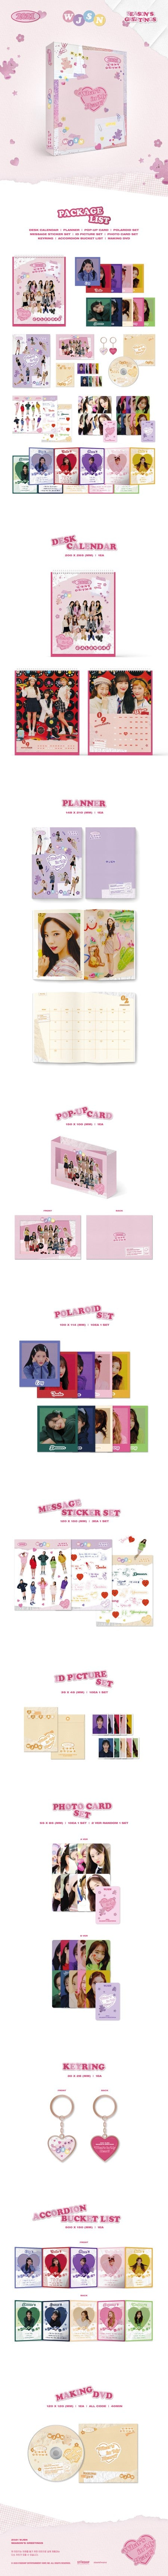 WJSN - 2021 SEASON'S GREETINGS product details